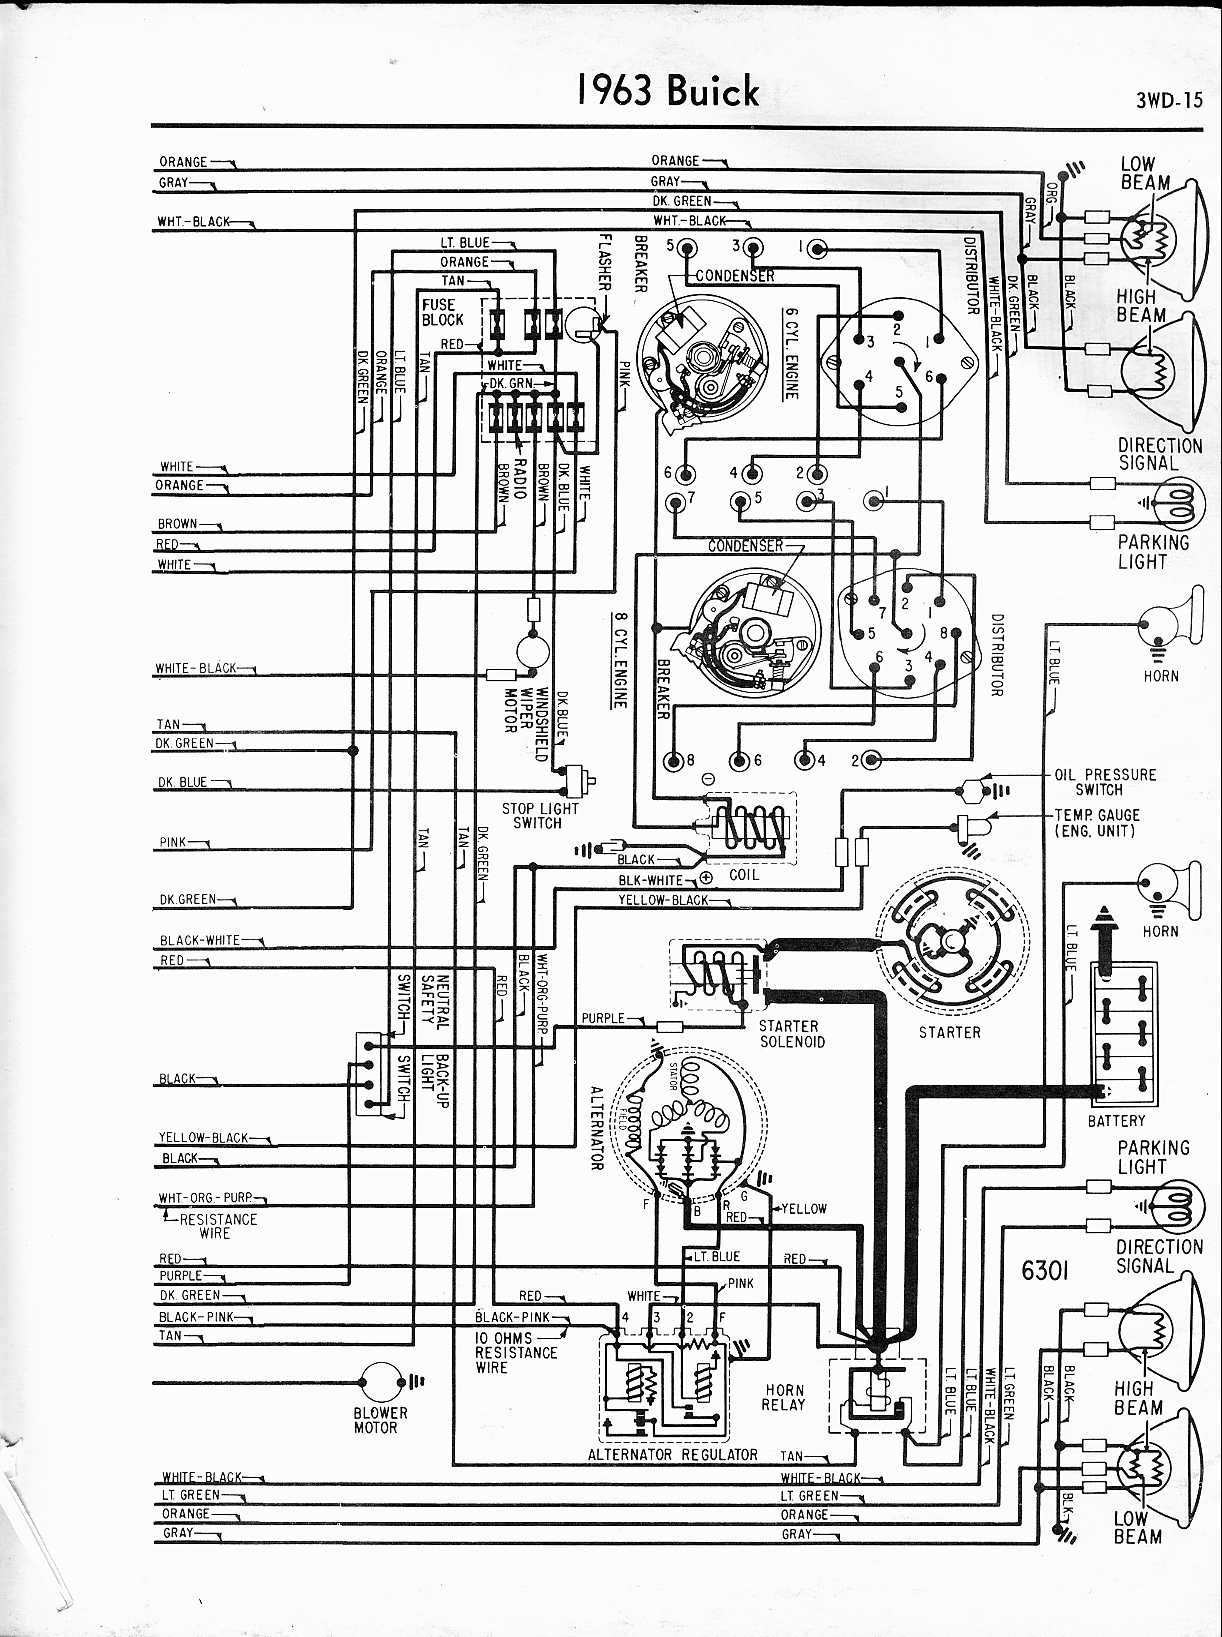 1969 Buick Wiring Diagram As Well Ford Ignition Content Resource 1982 Camaro Charging System 71 Pictures U2022 Rh Mapavick Co Uk